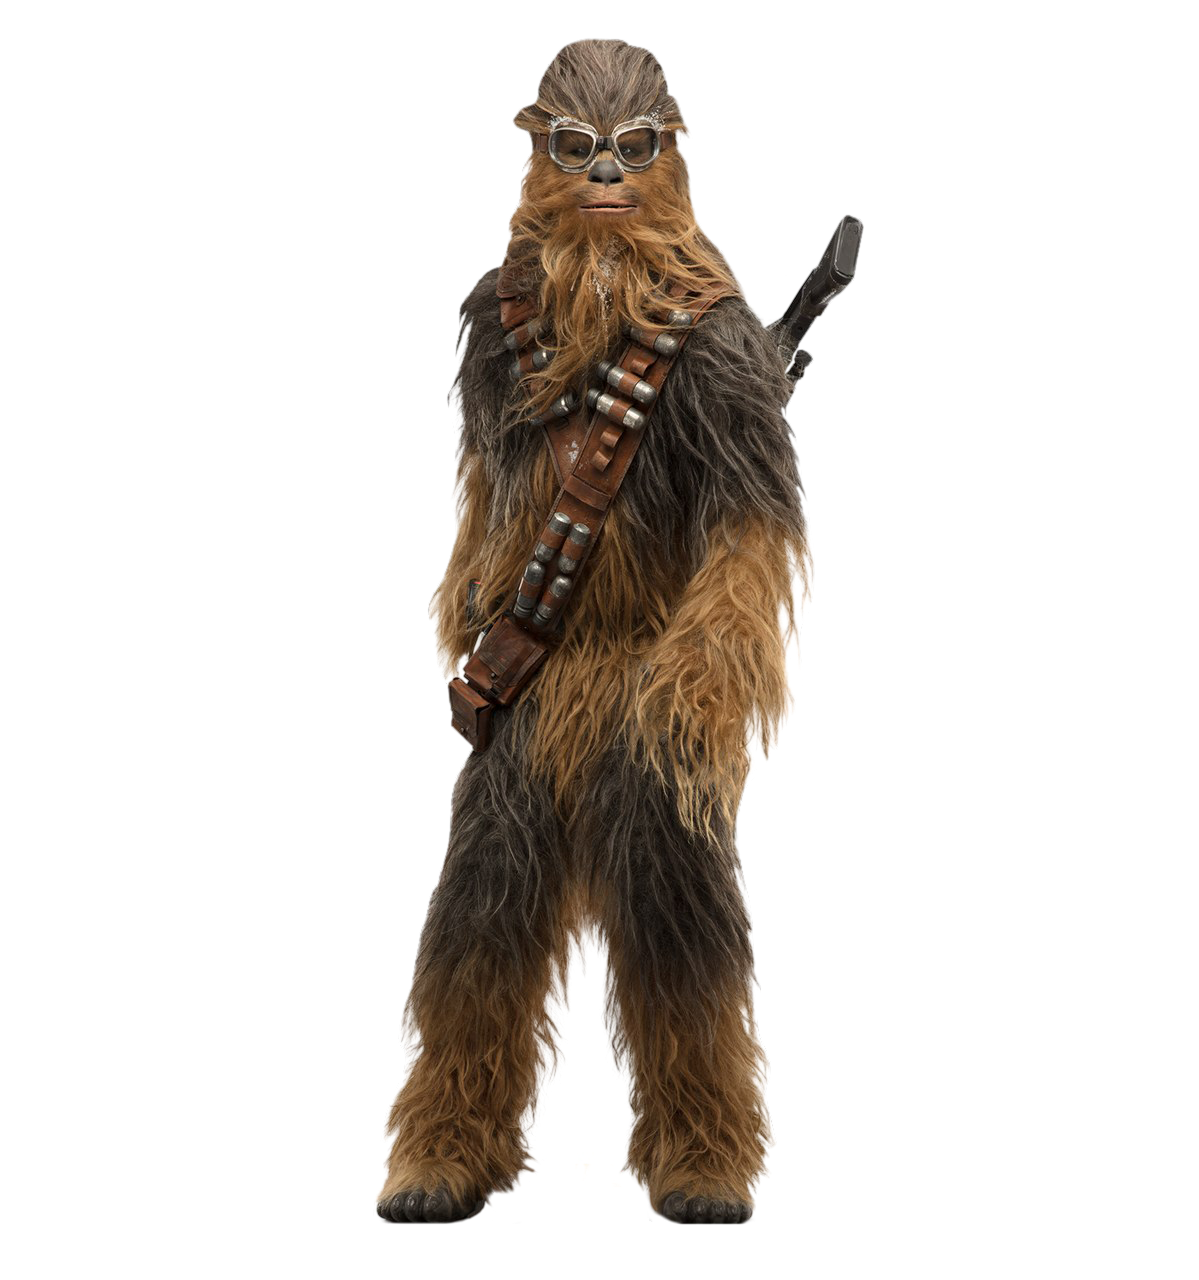 Chewbacca Solo A Star Wars Story Cut Out Characters with.